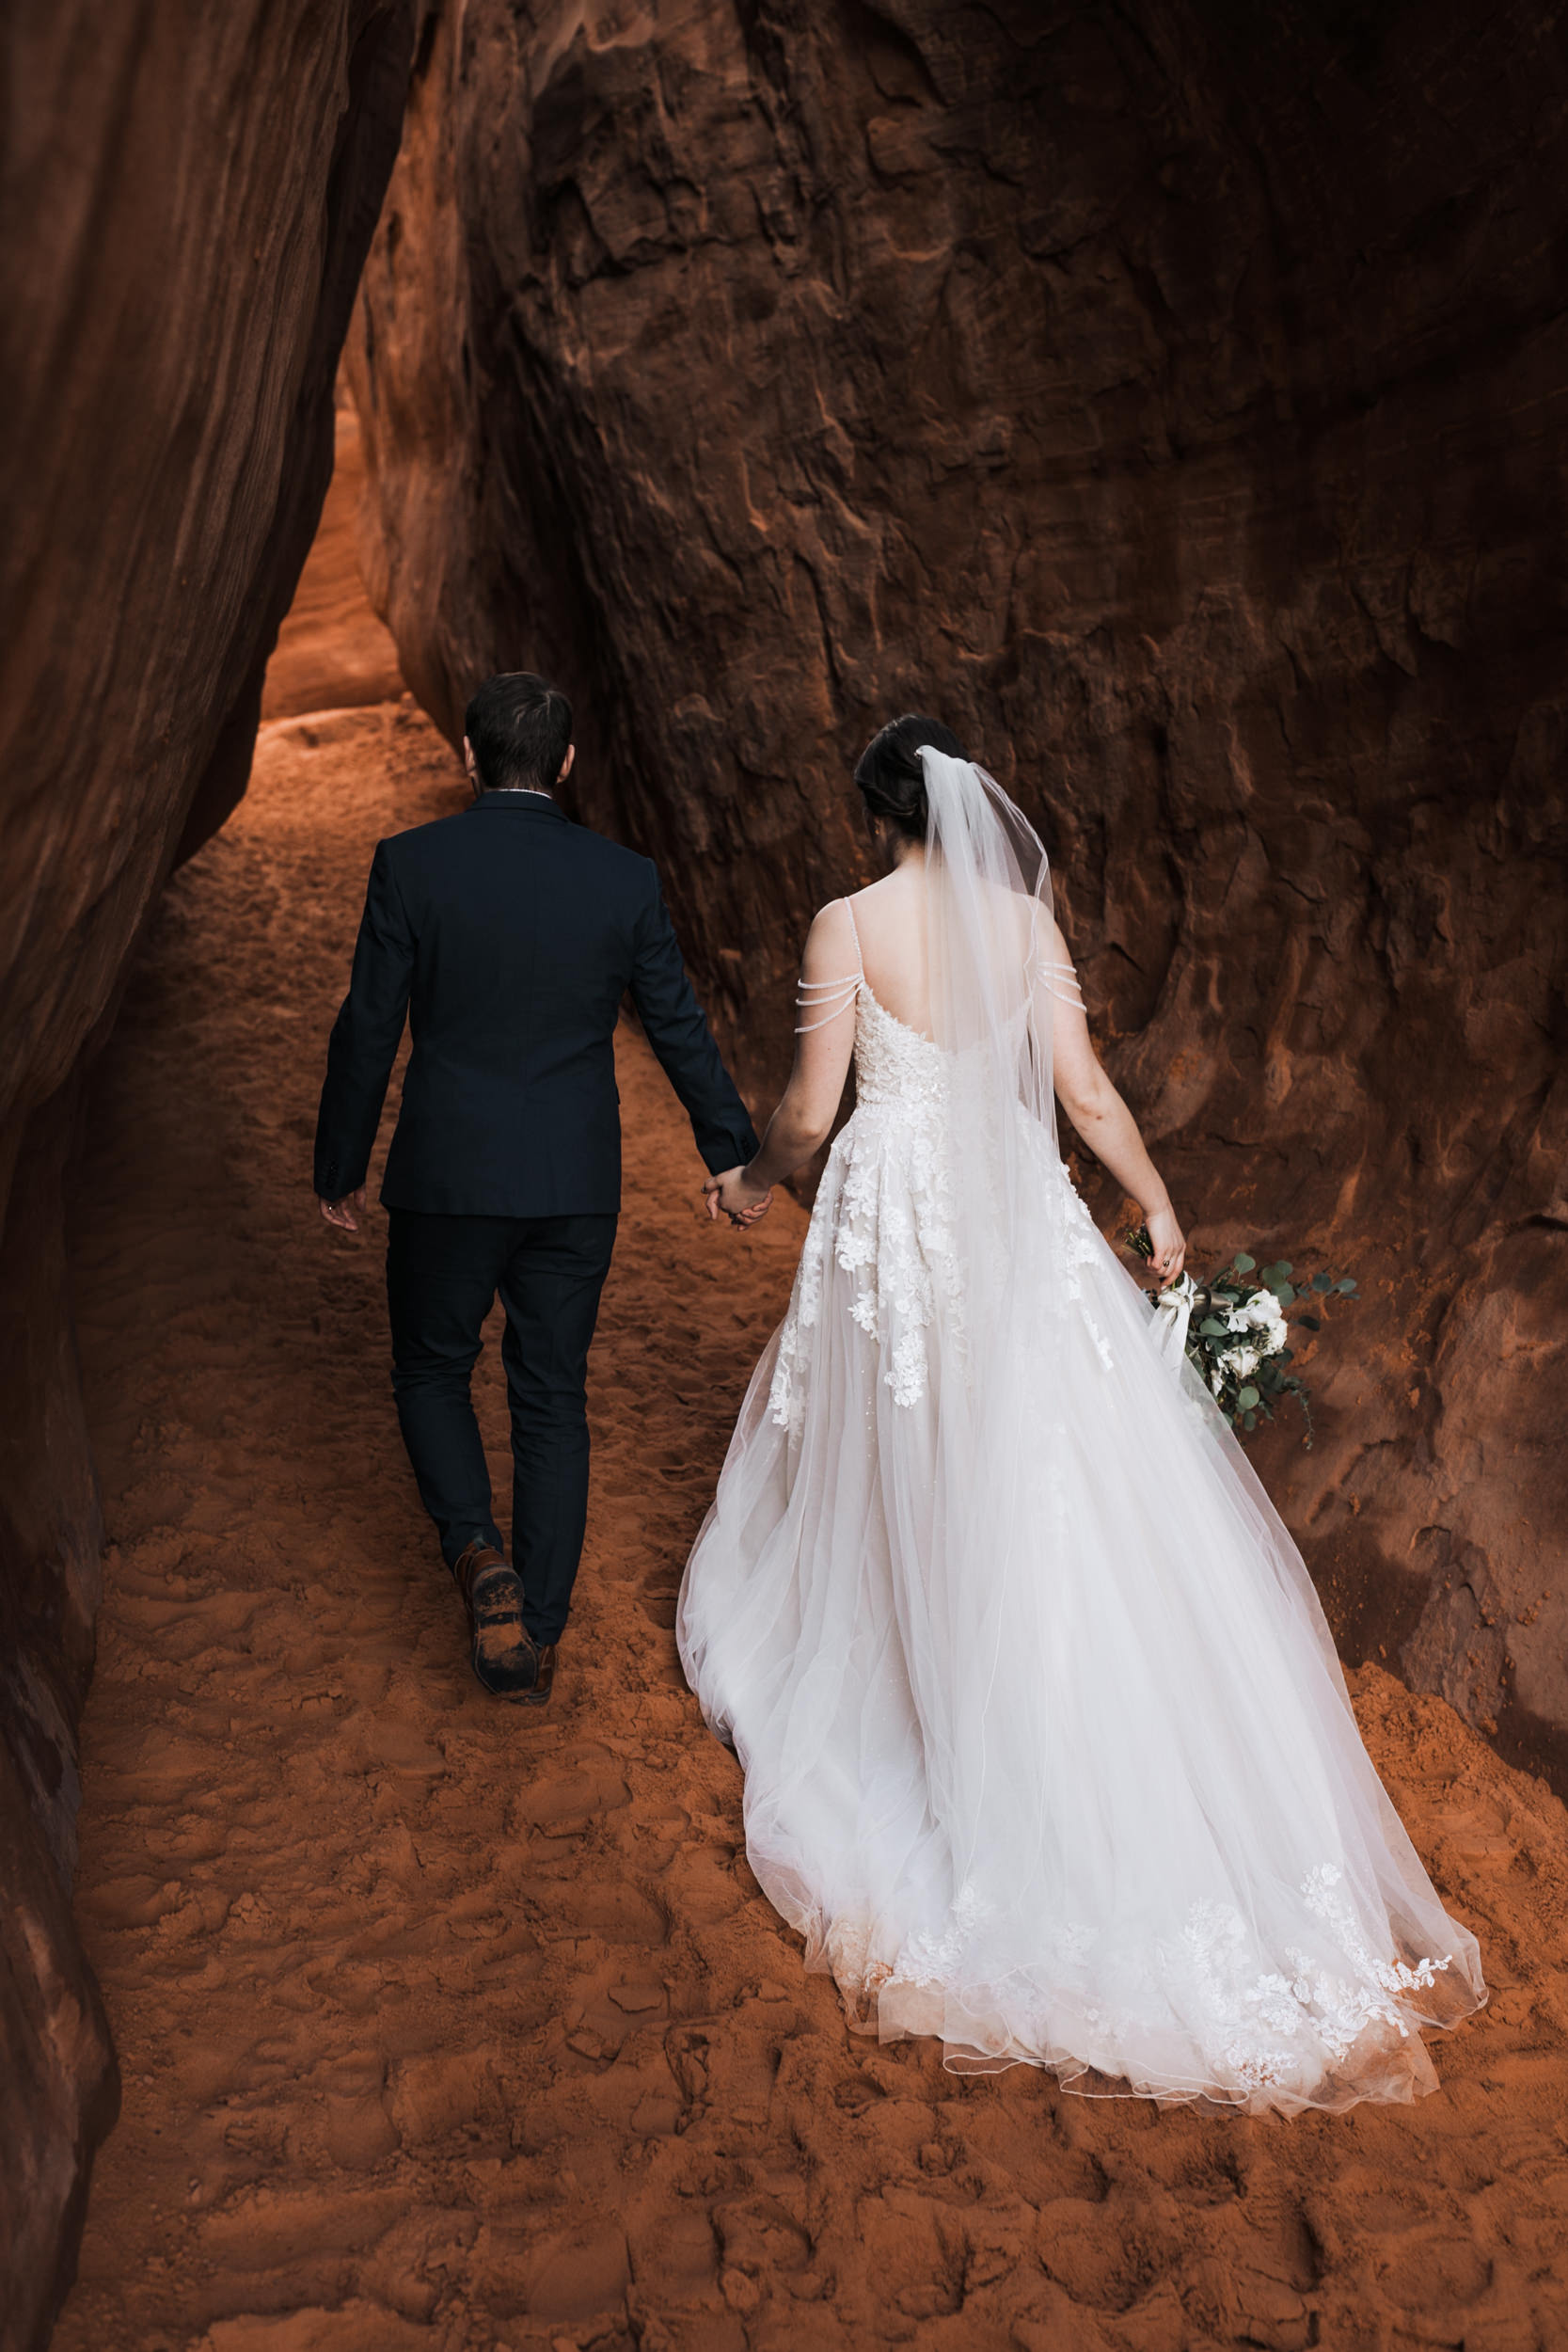 Some of the best wedding photos are little in between moments like this one when we were hiking from their ceremony to take some pictures in the Canyons of Arches National Park.